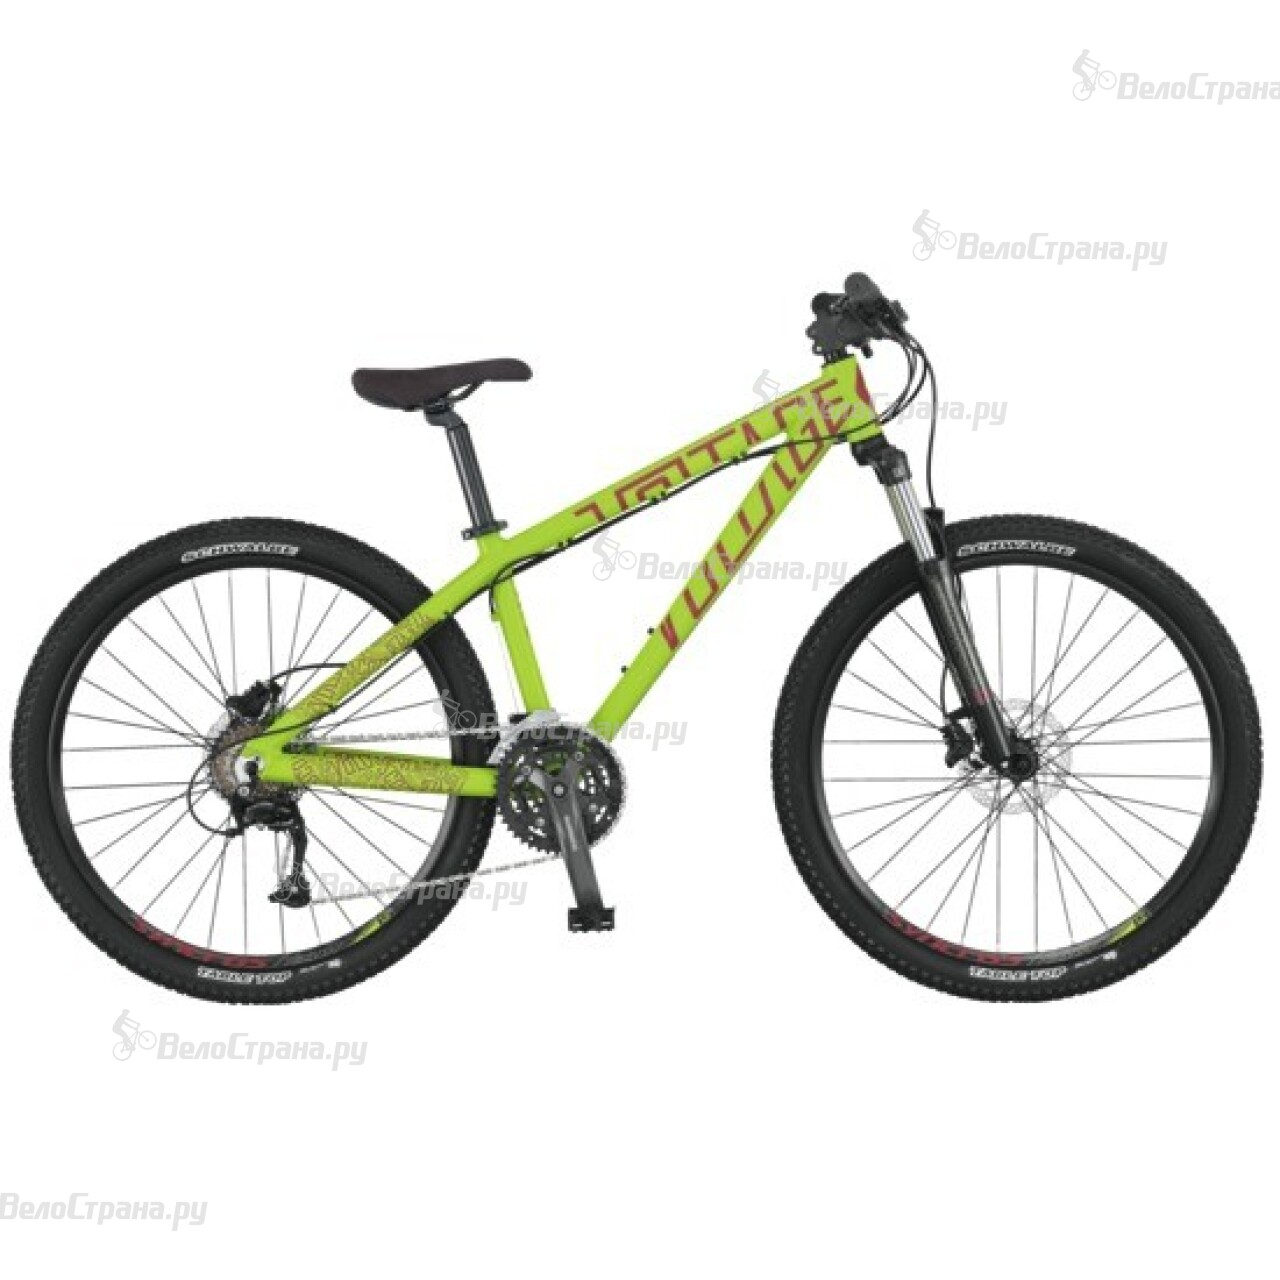 Велосипед Scott Voltage YZ 10 (2014) велосипед scott voltage yz 20 2014